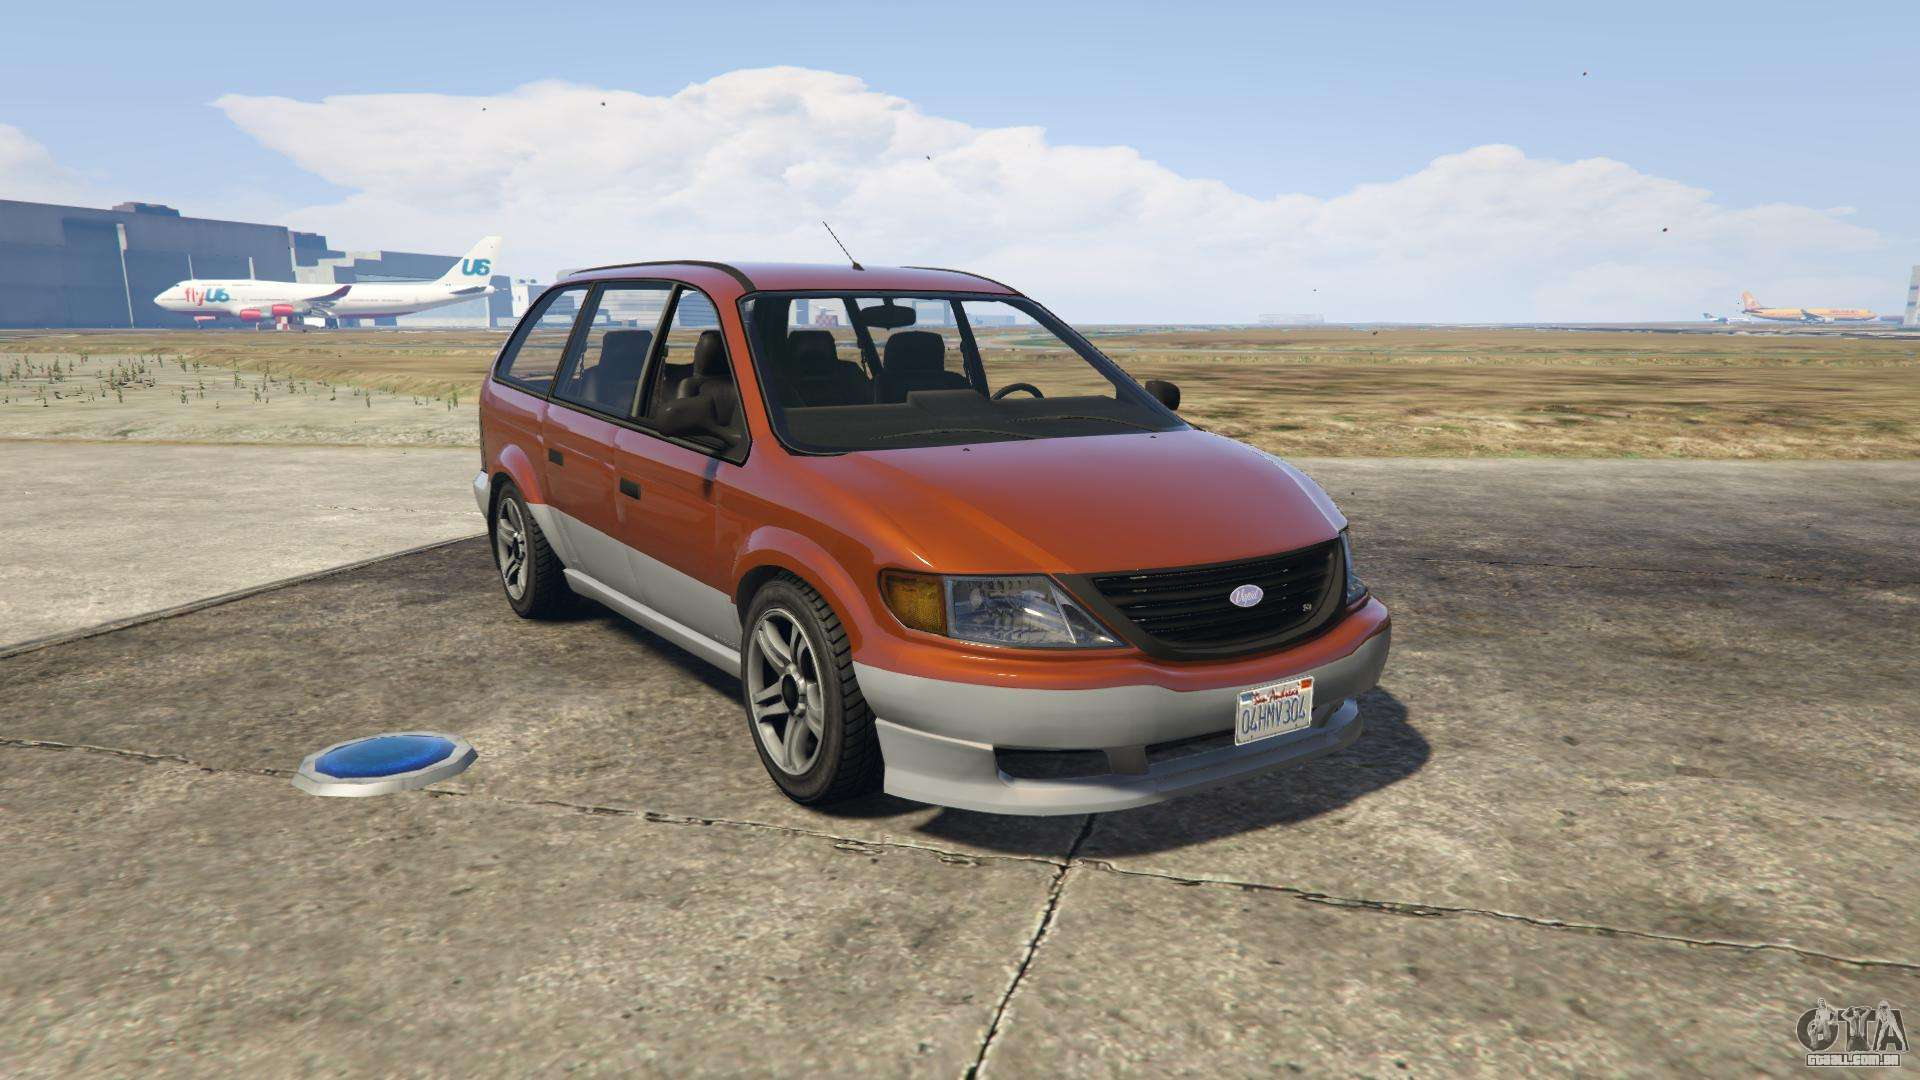 GTA 5 Vapid Minivan - vista frontal